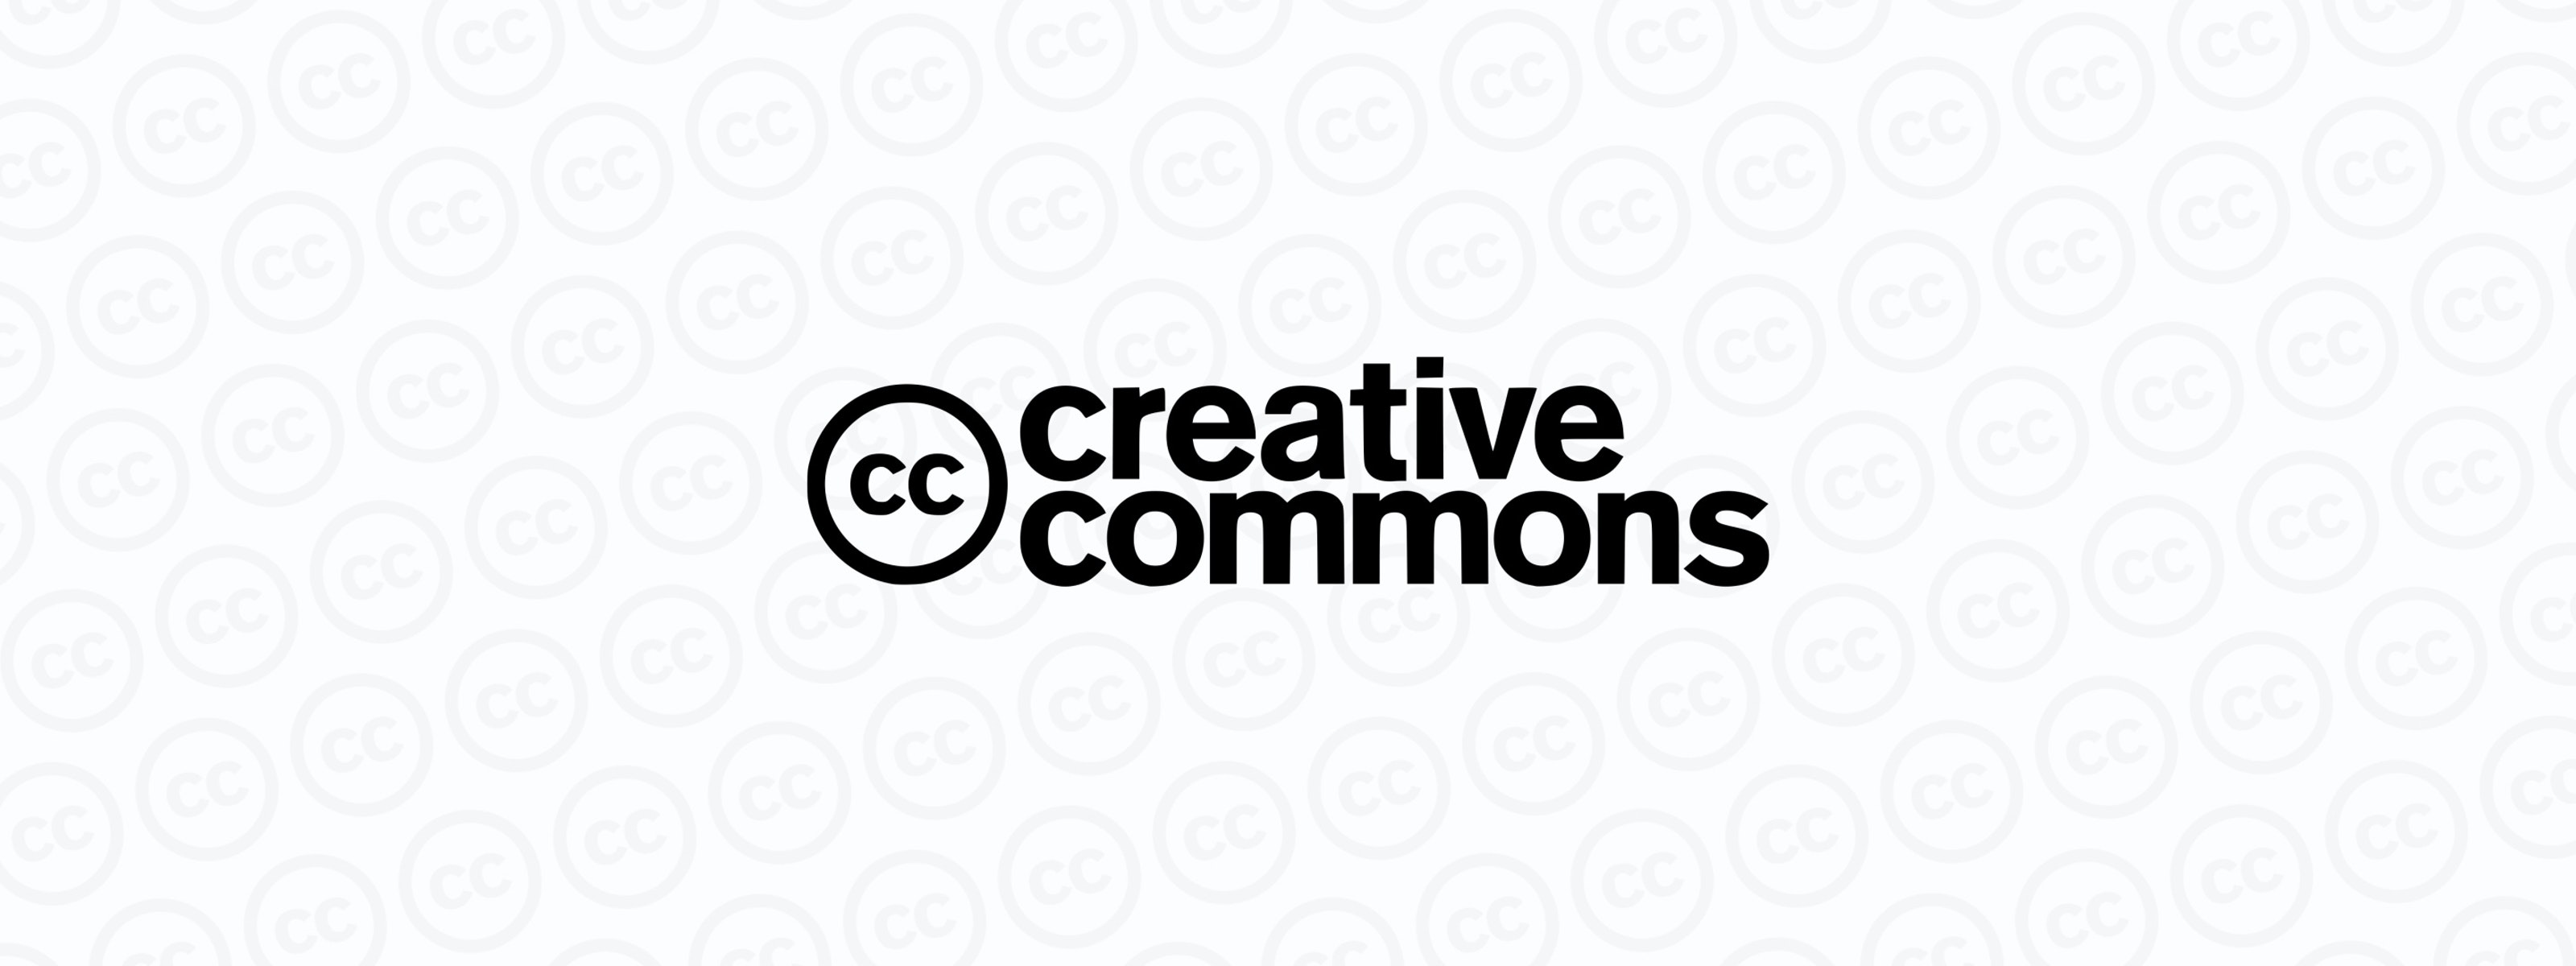 Understanding Creative Commons: Rights & Restrictions